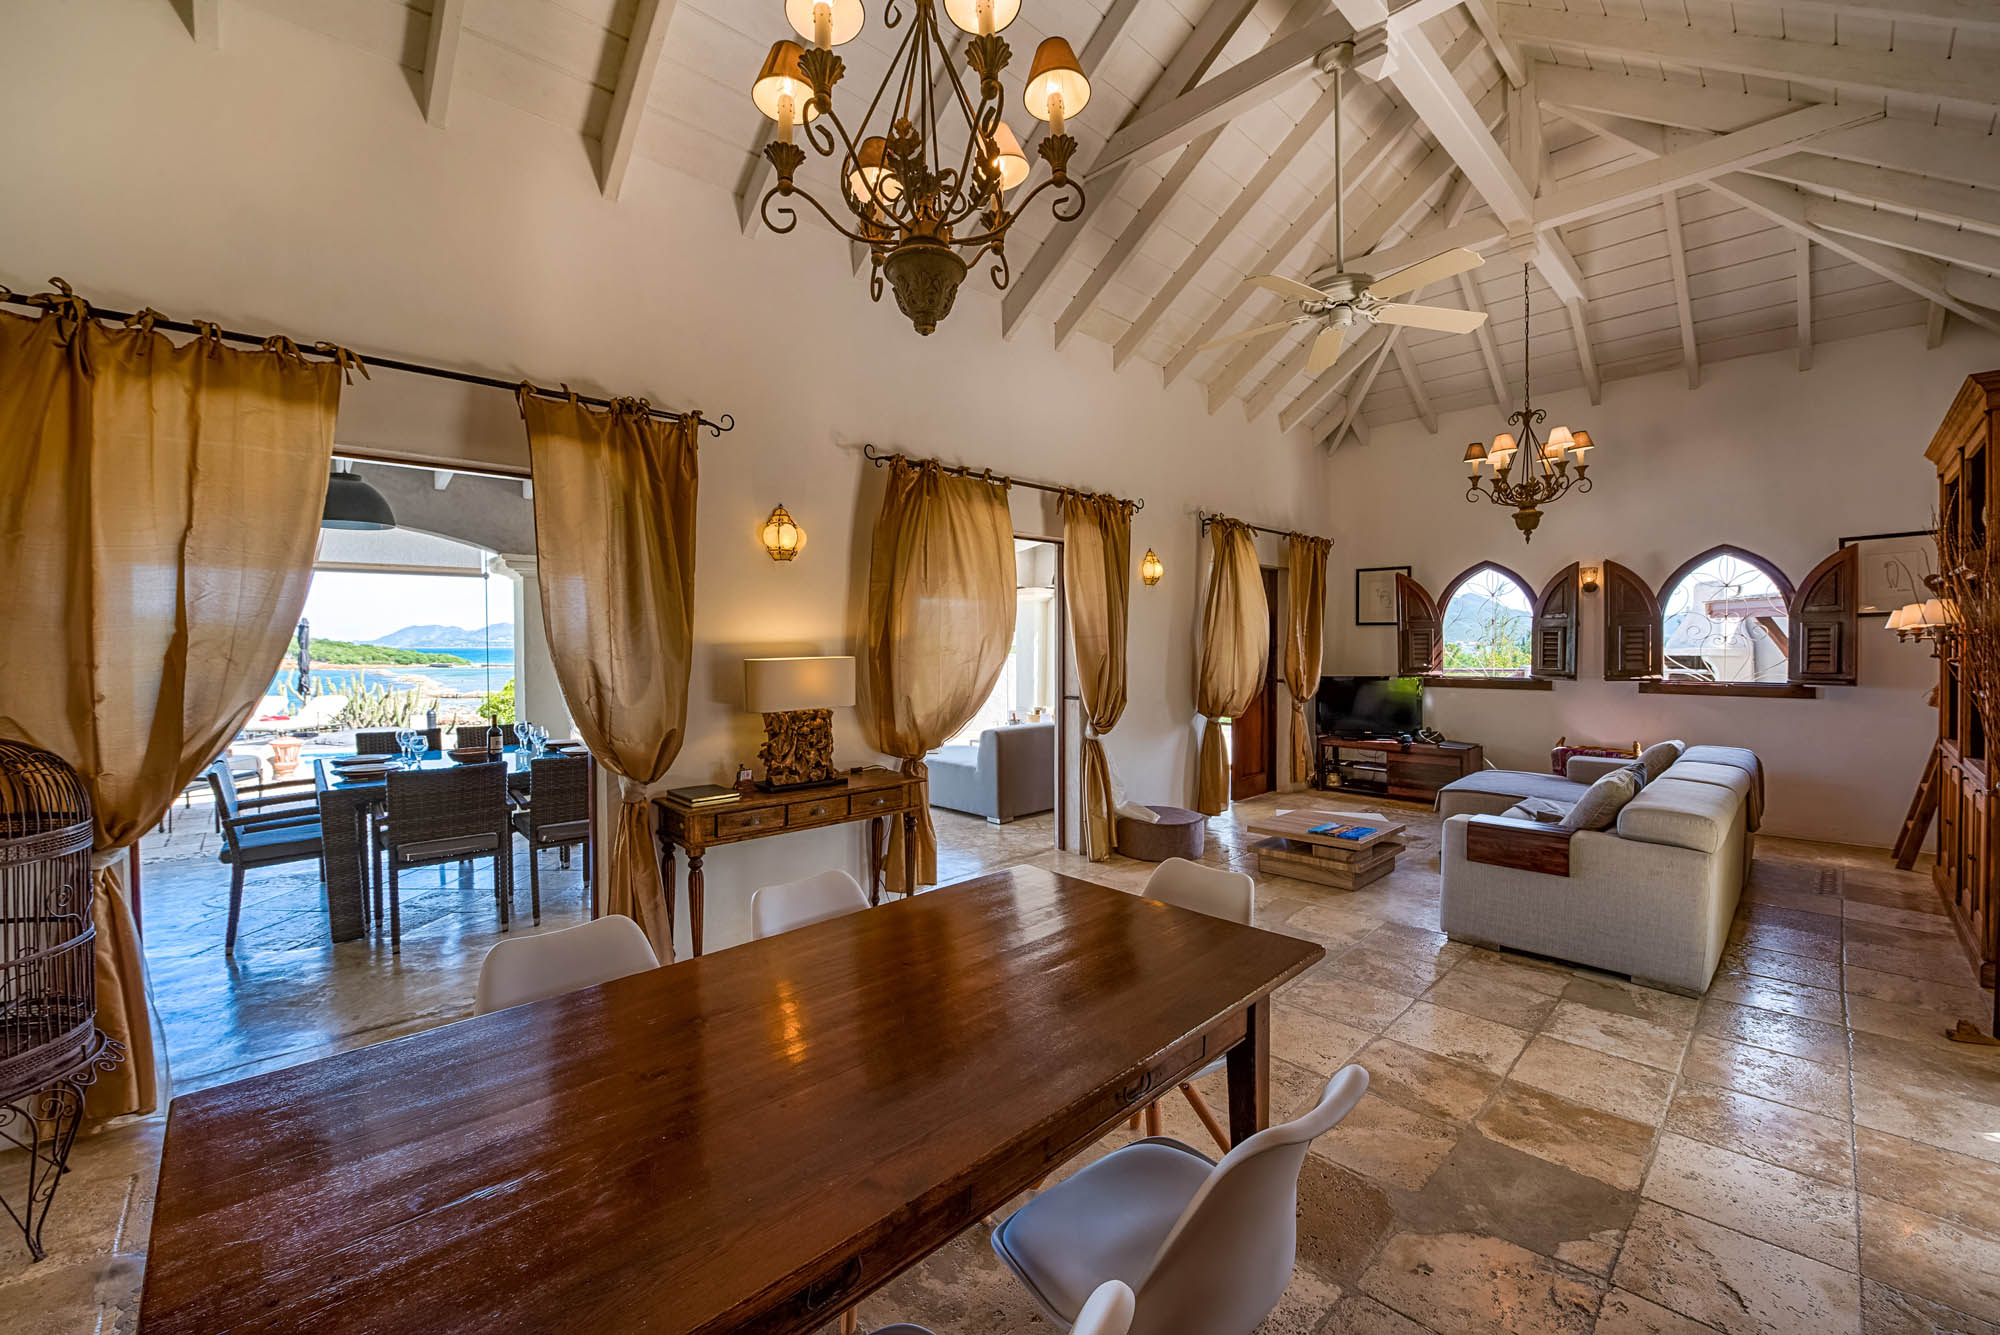 Le Mas des Sables, Baie aux Cayes, Terres-Basses, offers a spacious living room with luxury interior and precious design throughout.